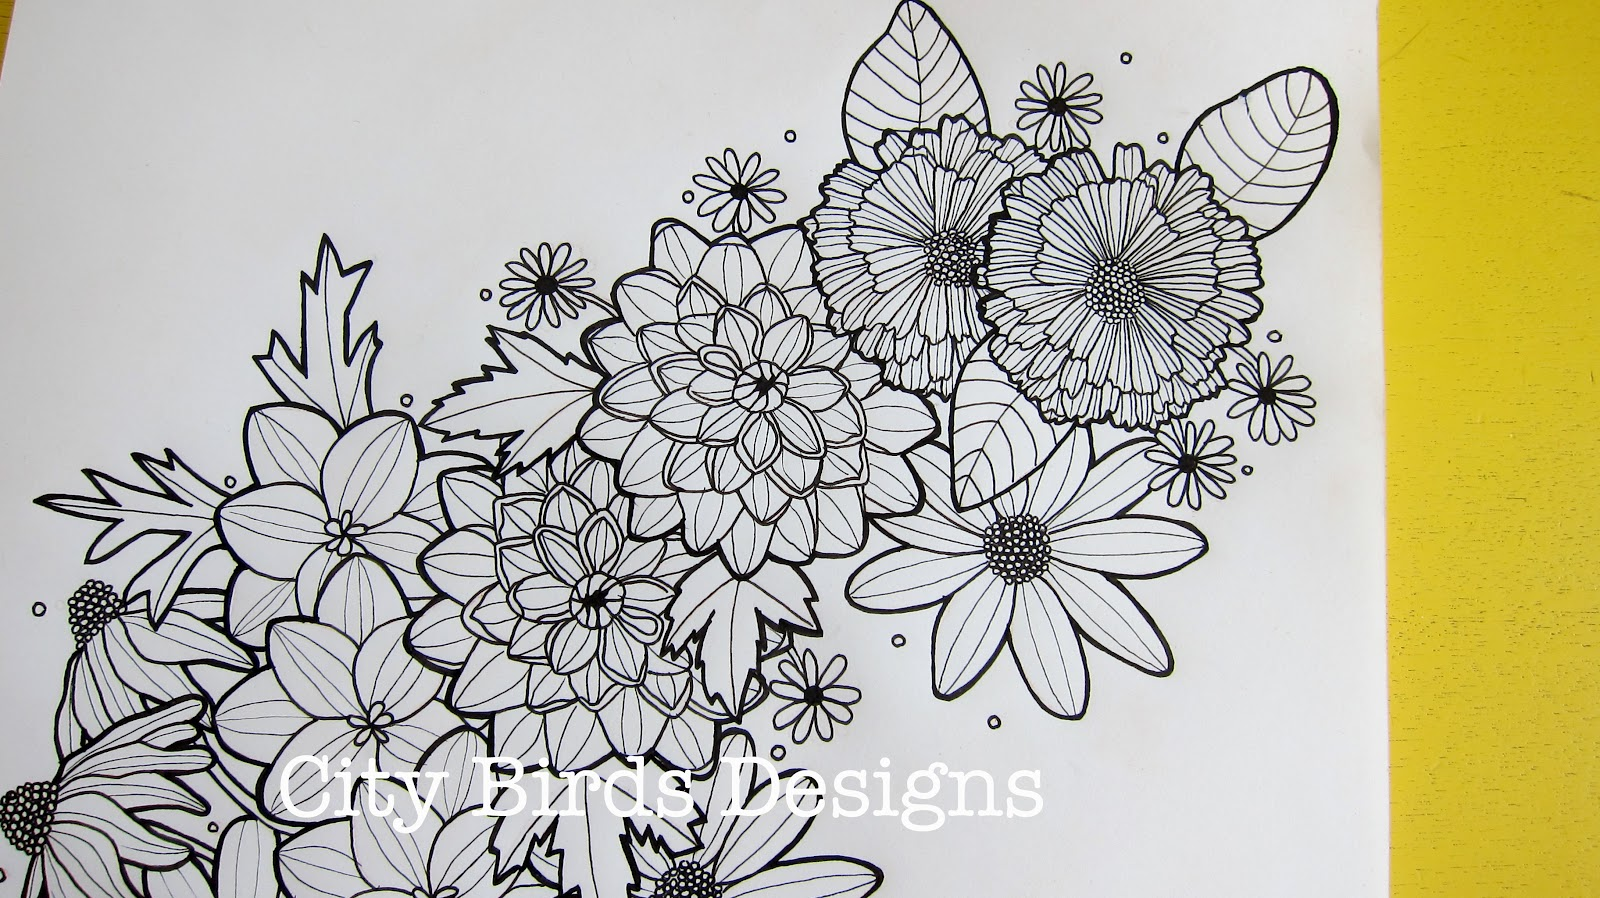 Flower Sleeve Tattoo Sketches